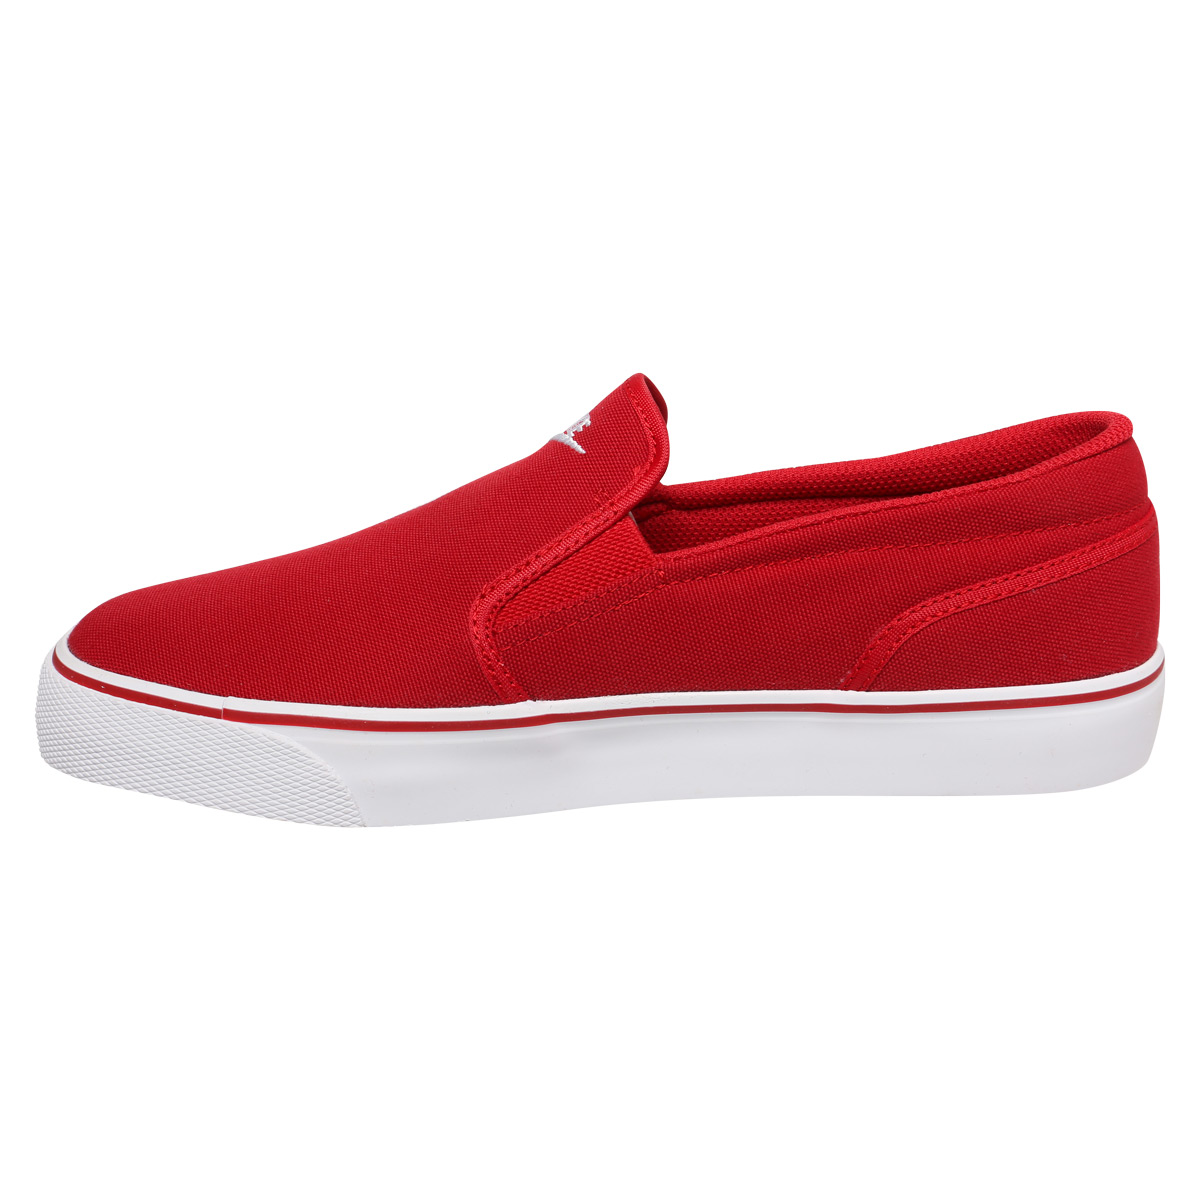 nike slip on shoes for